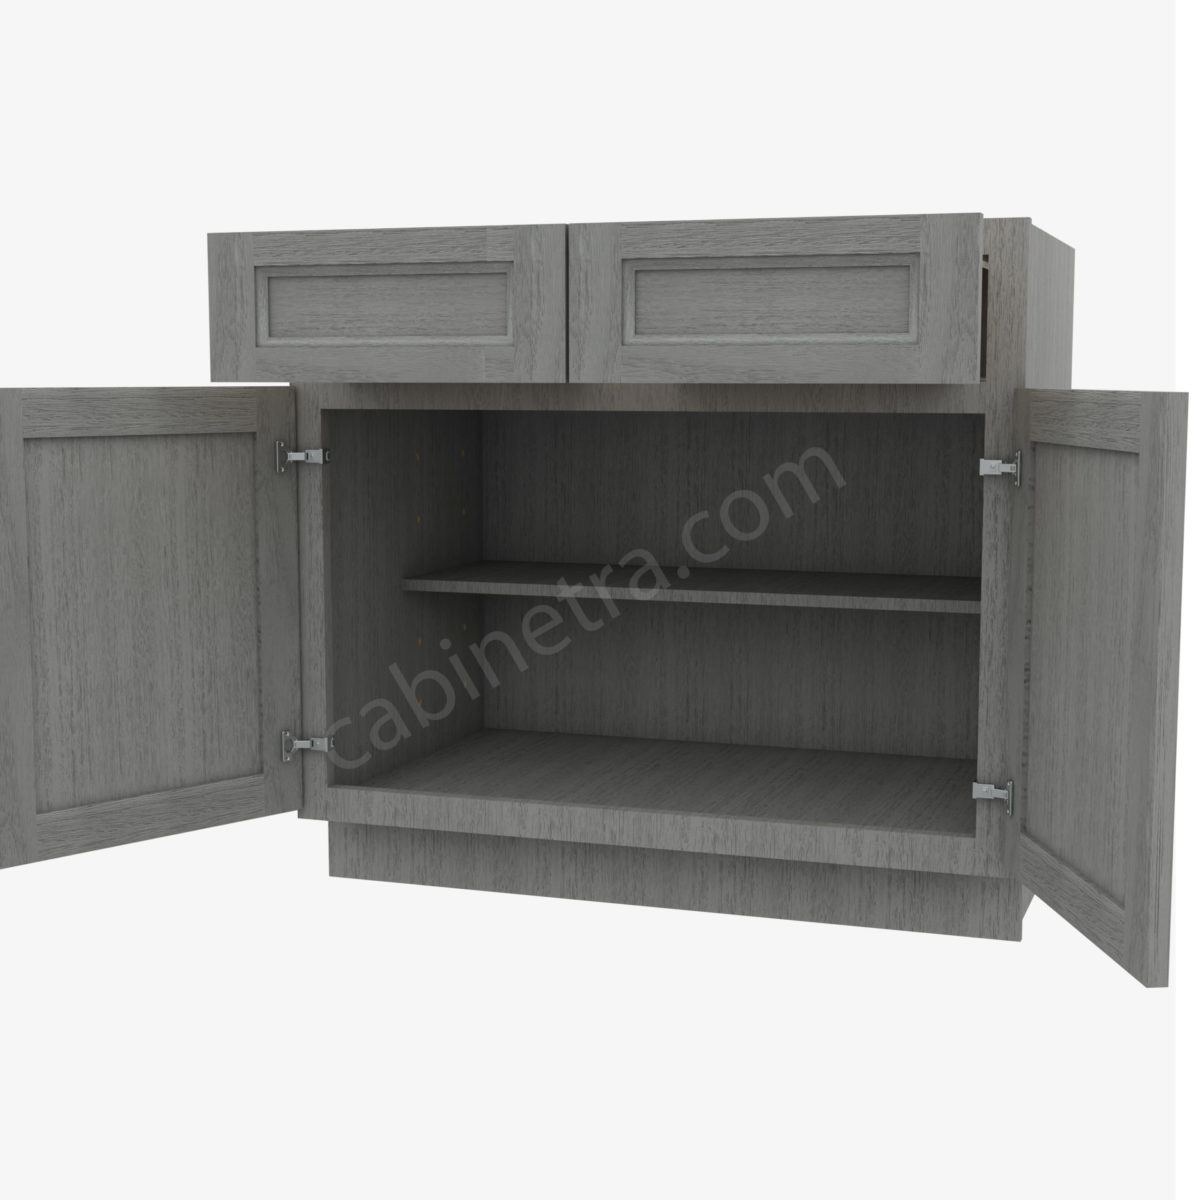 TG B36B 5 Forevermark Midtown Grey Cabinetra scaled